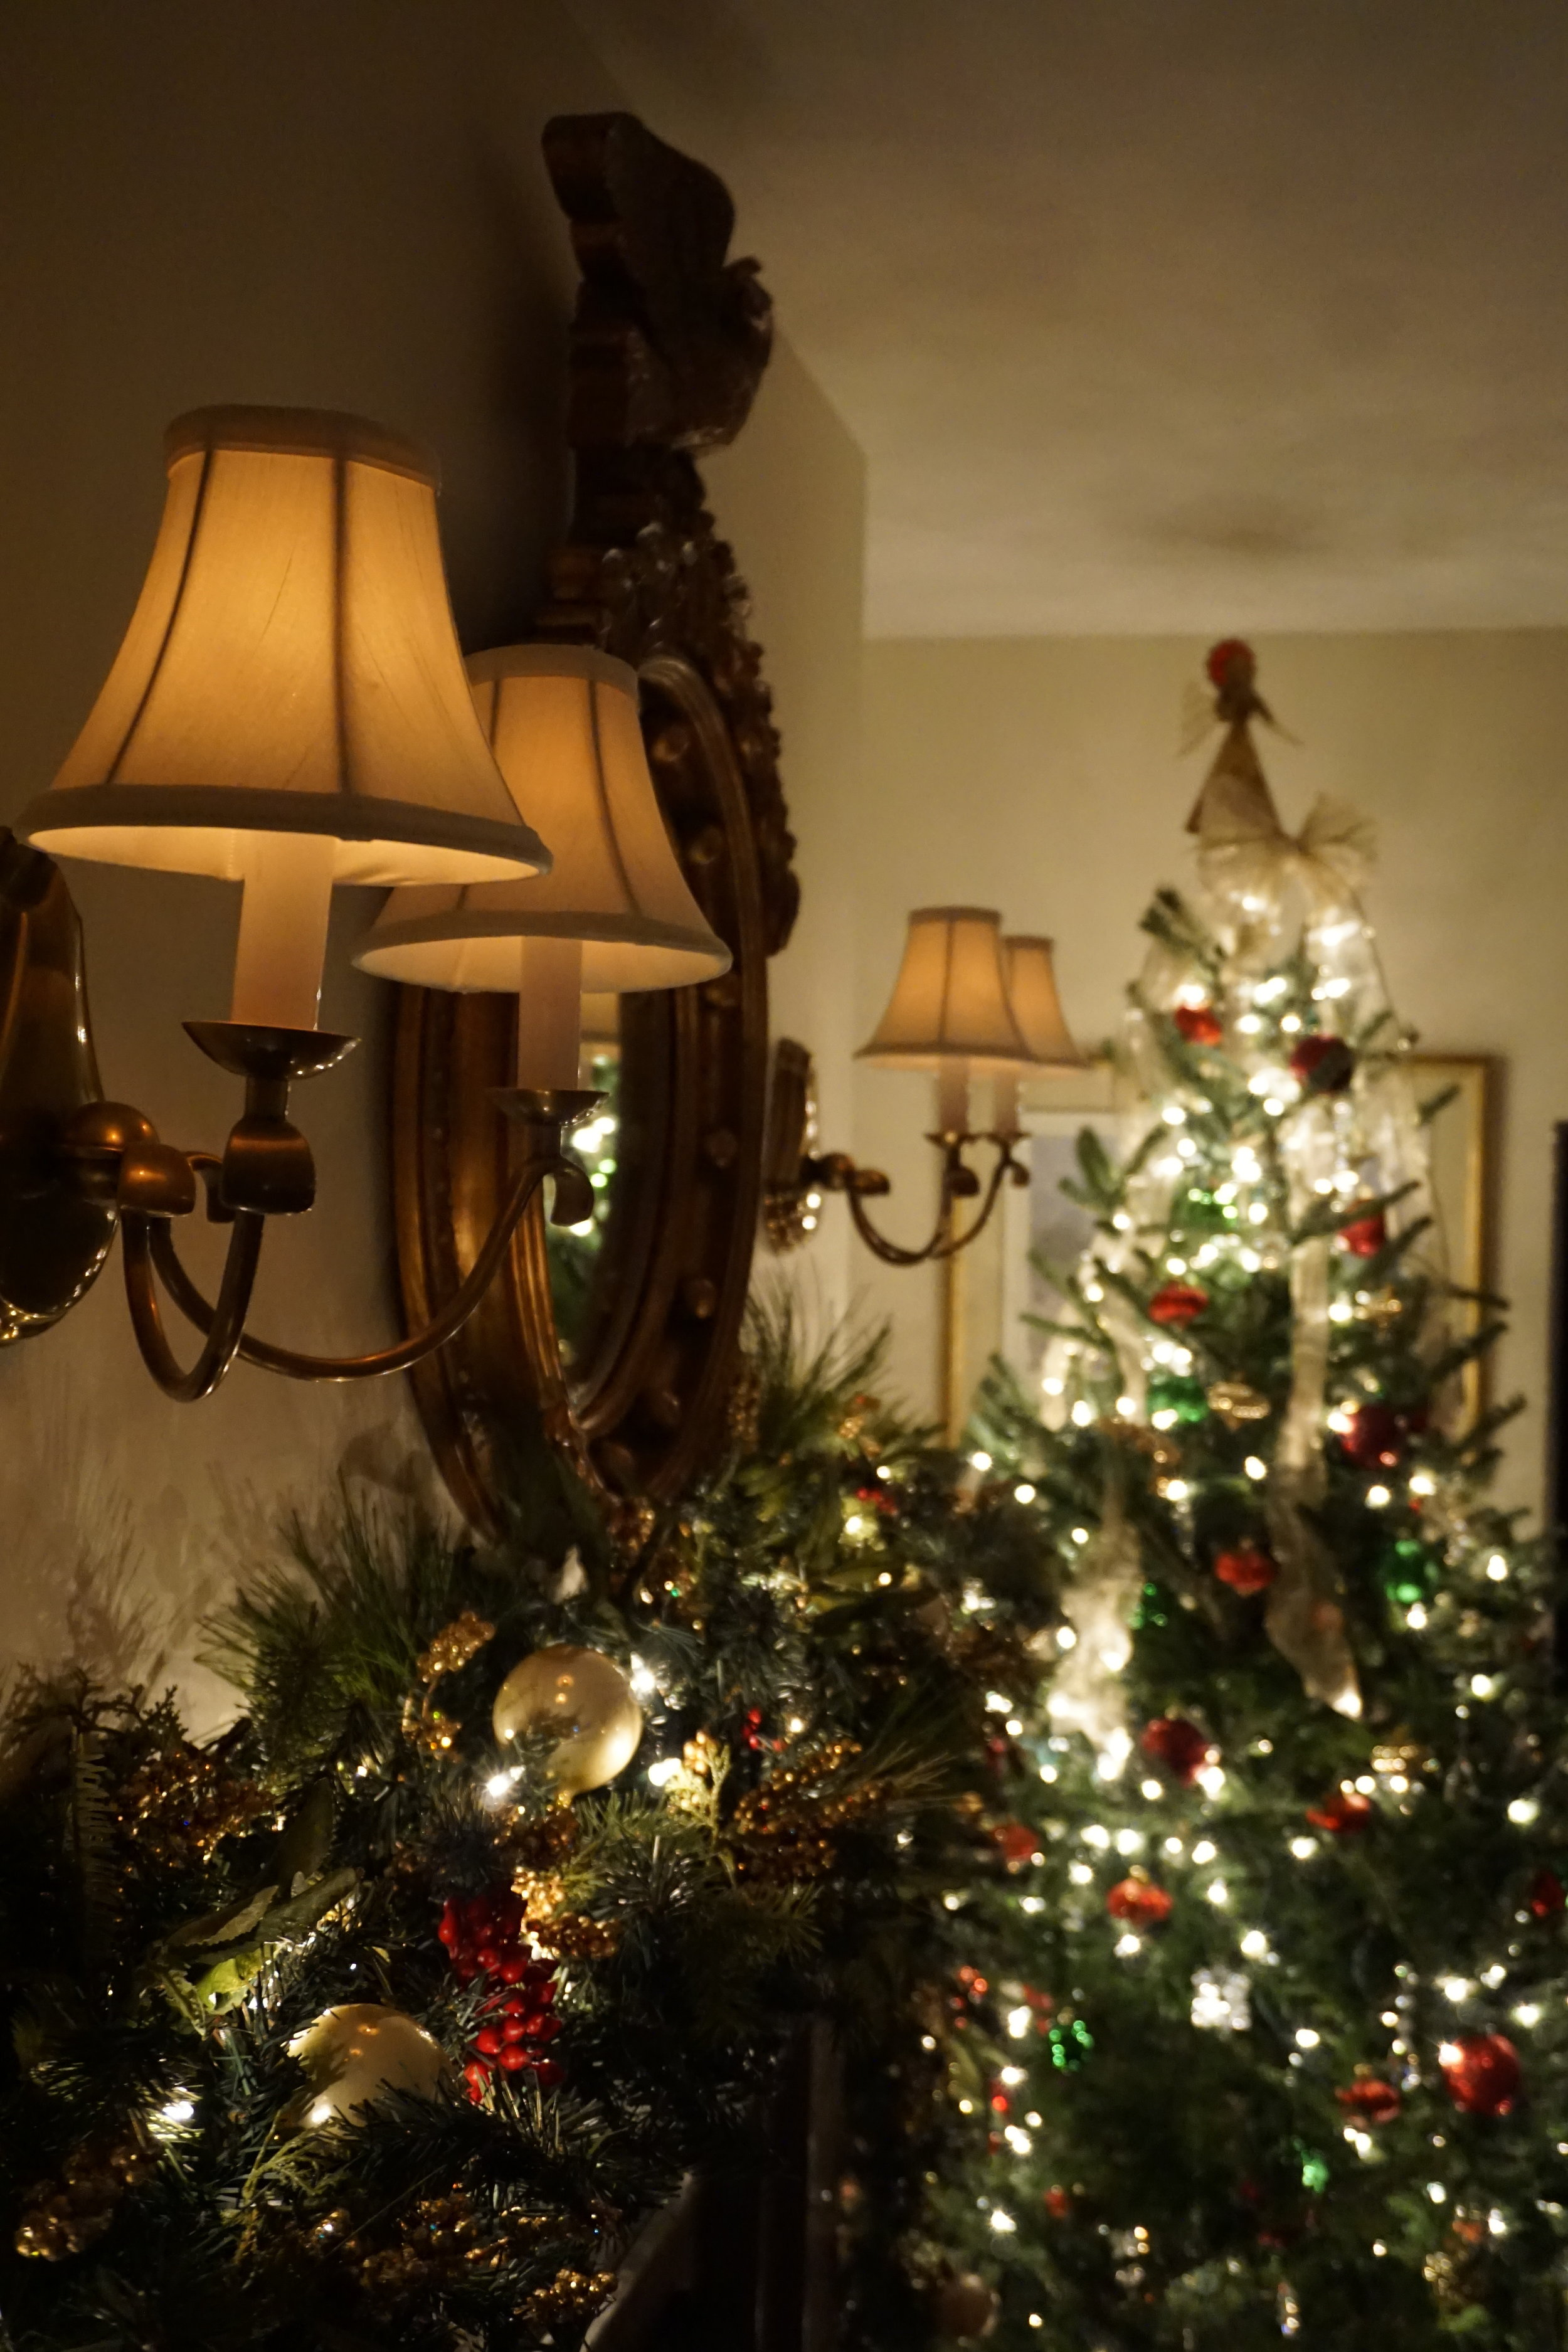 mantel in colonial home decorated for Christmas